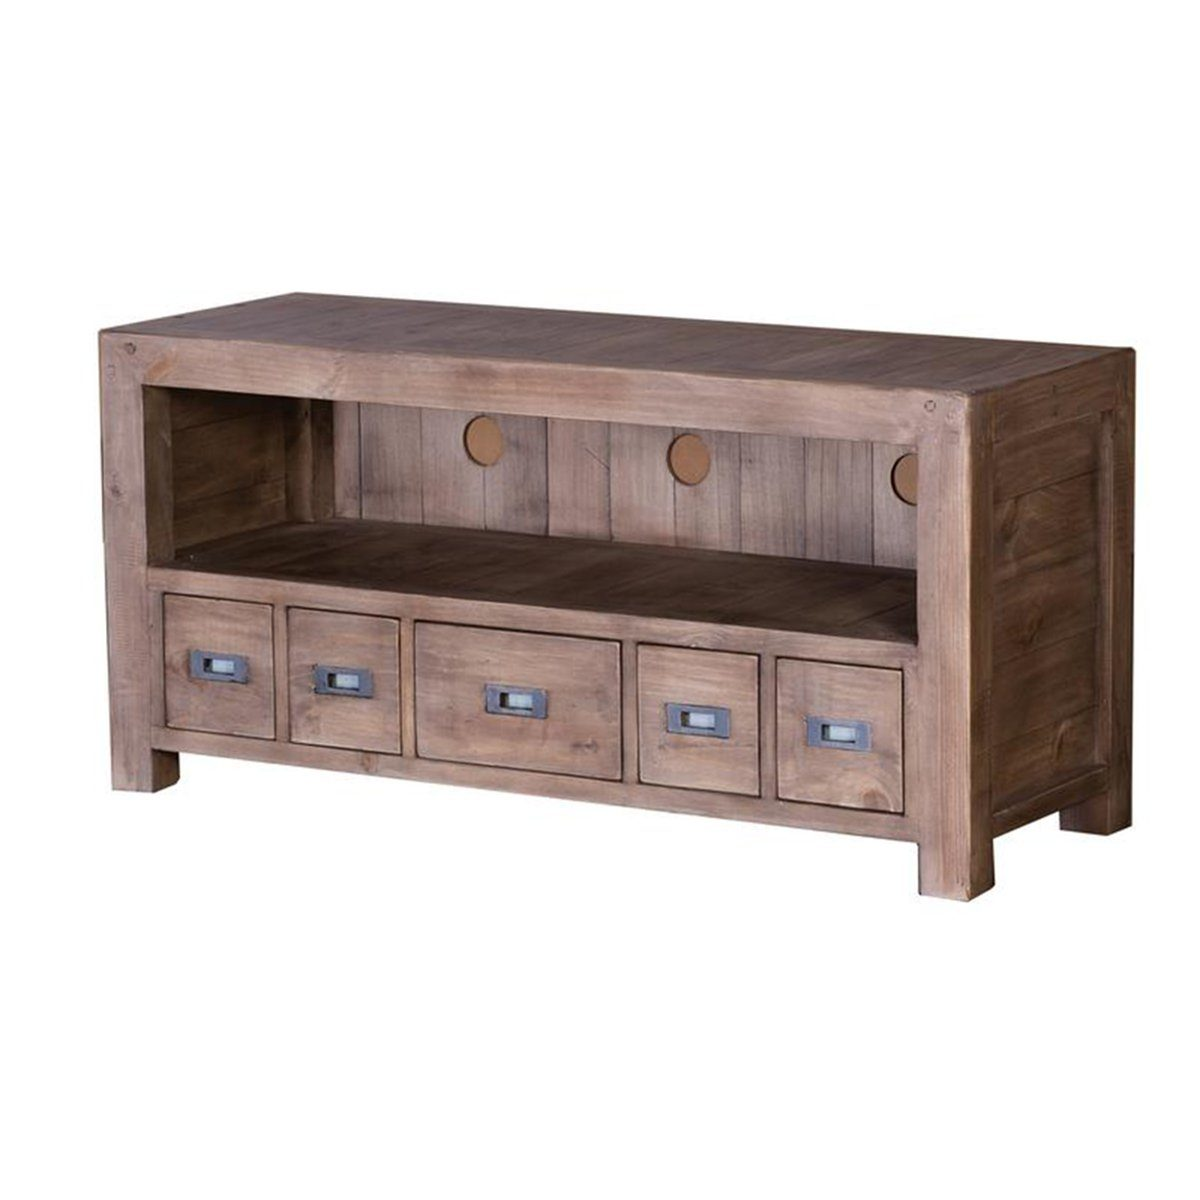 POST & RAIL SMALL TV CABINET - SUNDRIED - Showhome Furniture